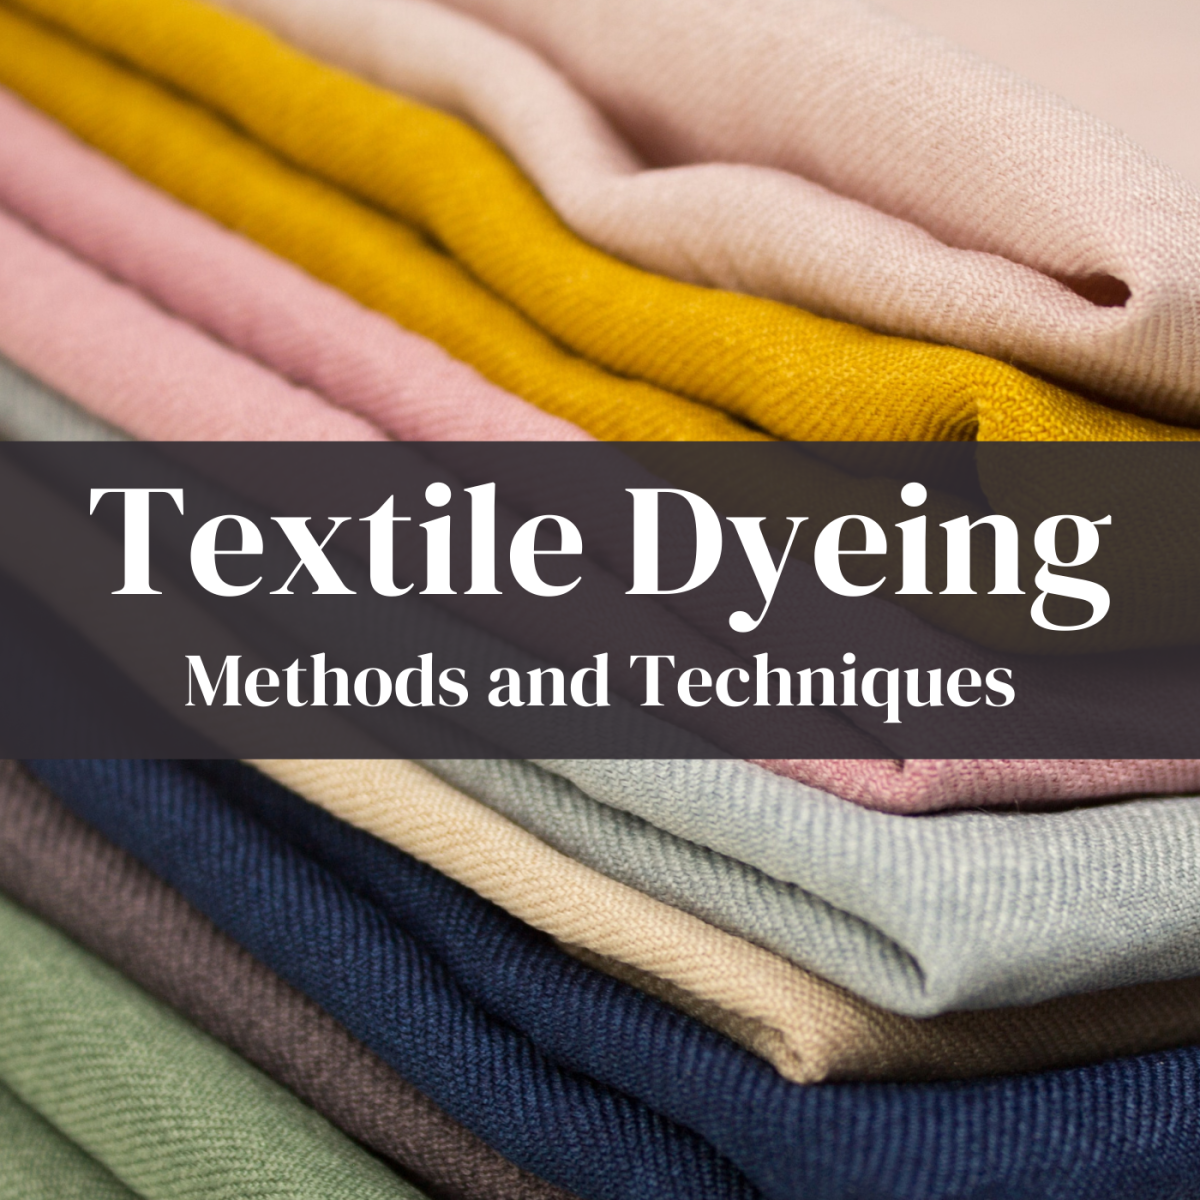 Learn about the various methods of dyeing textiles.